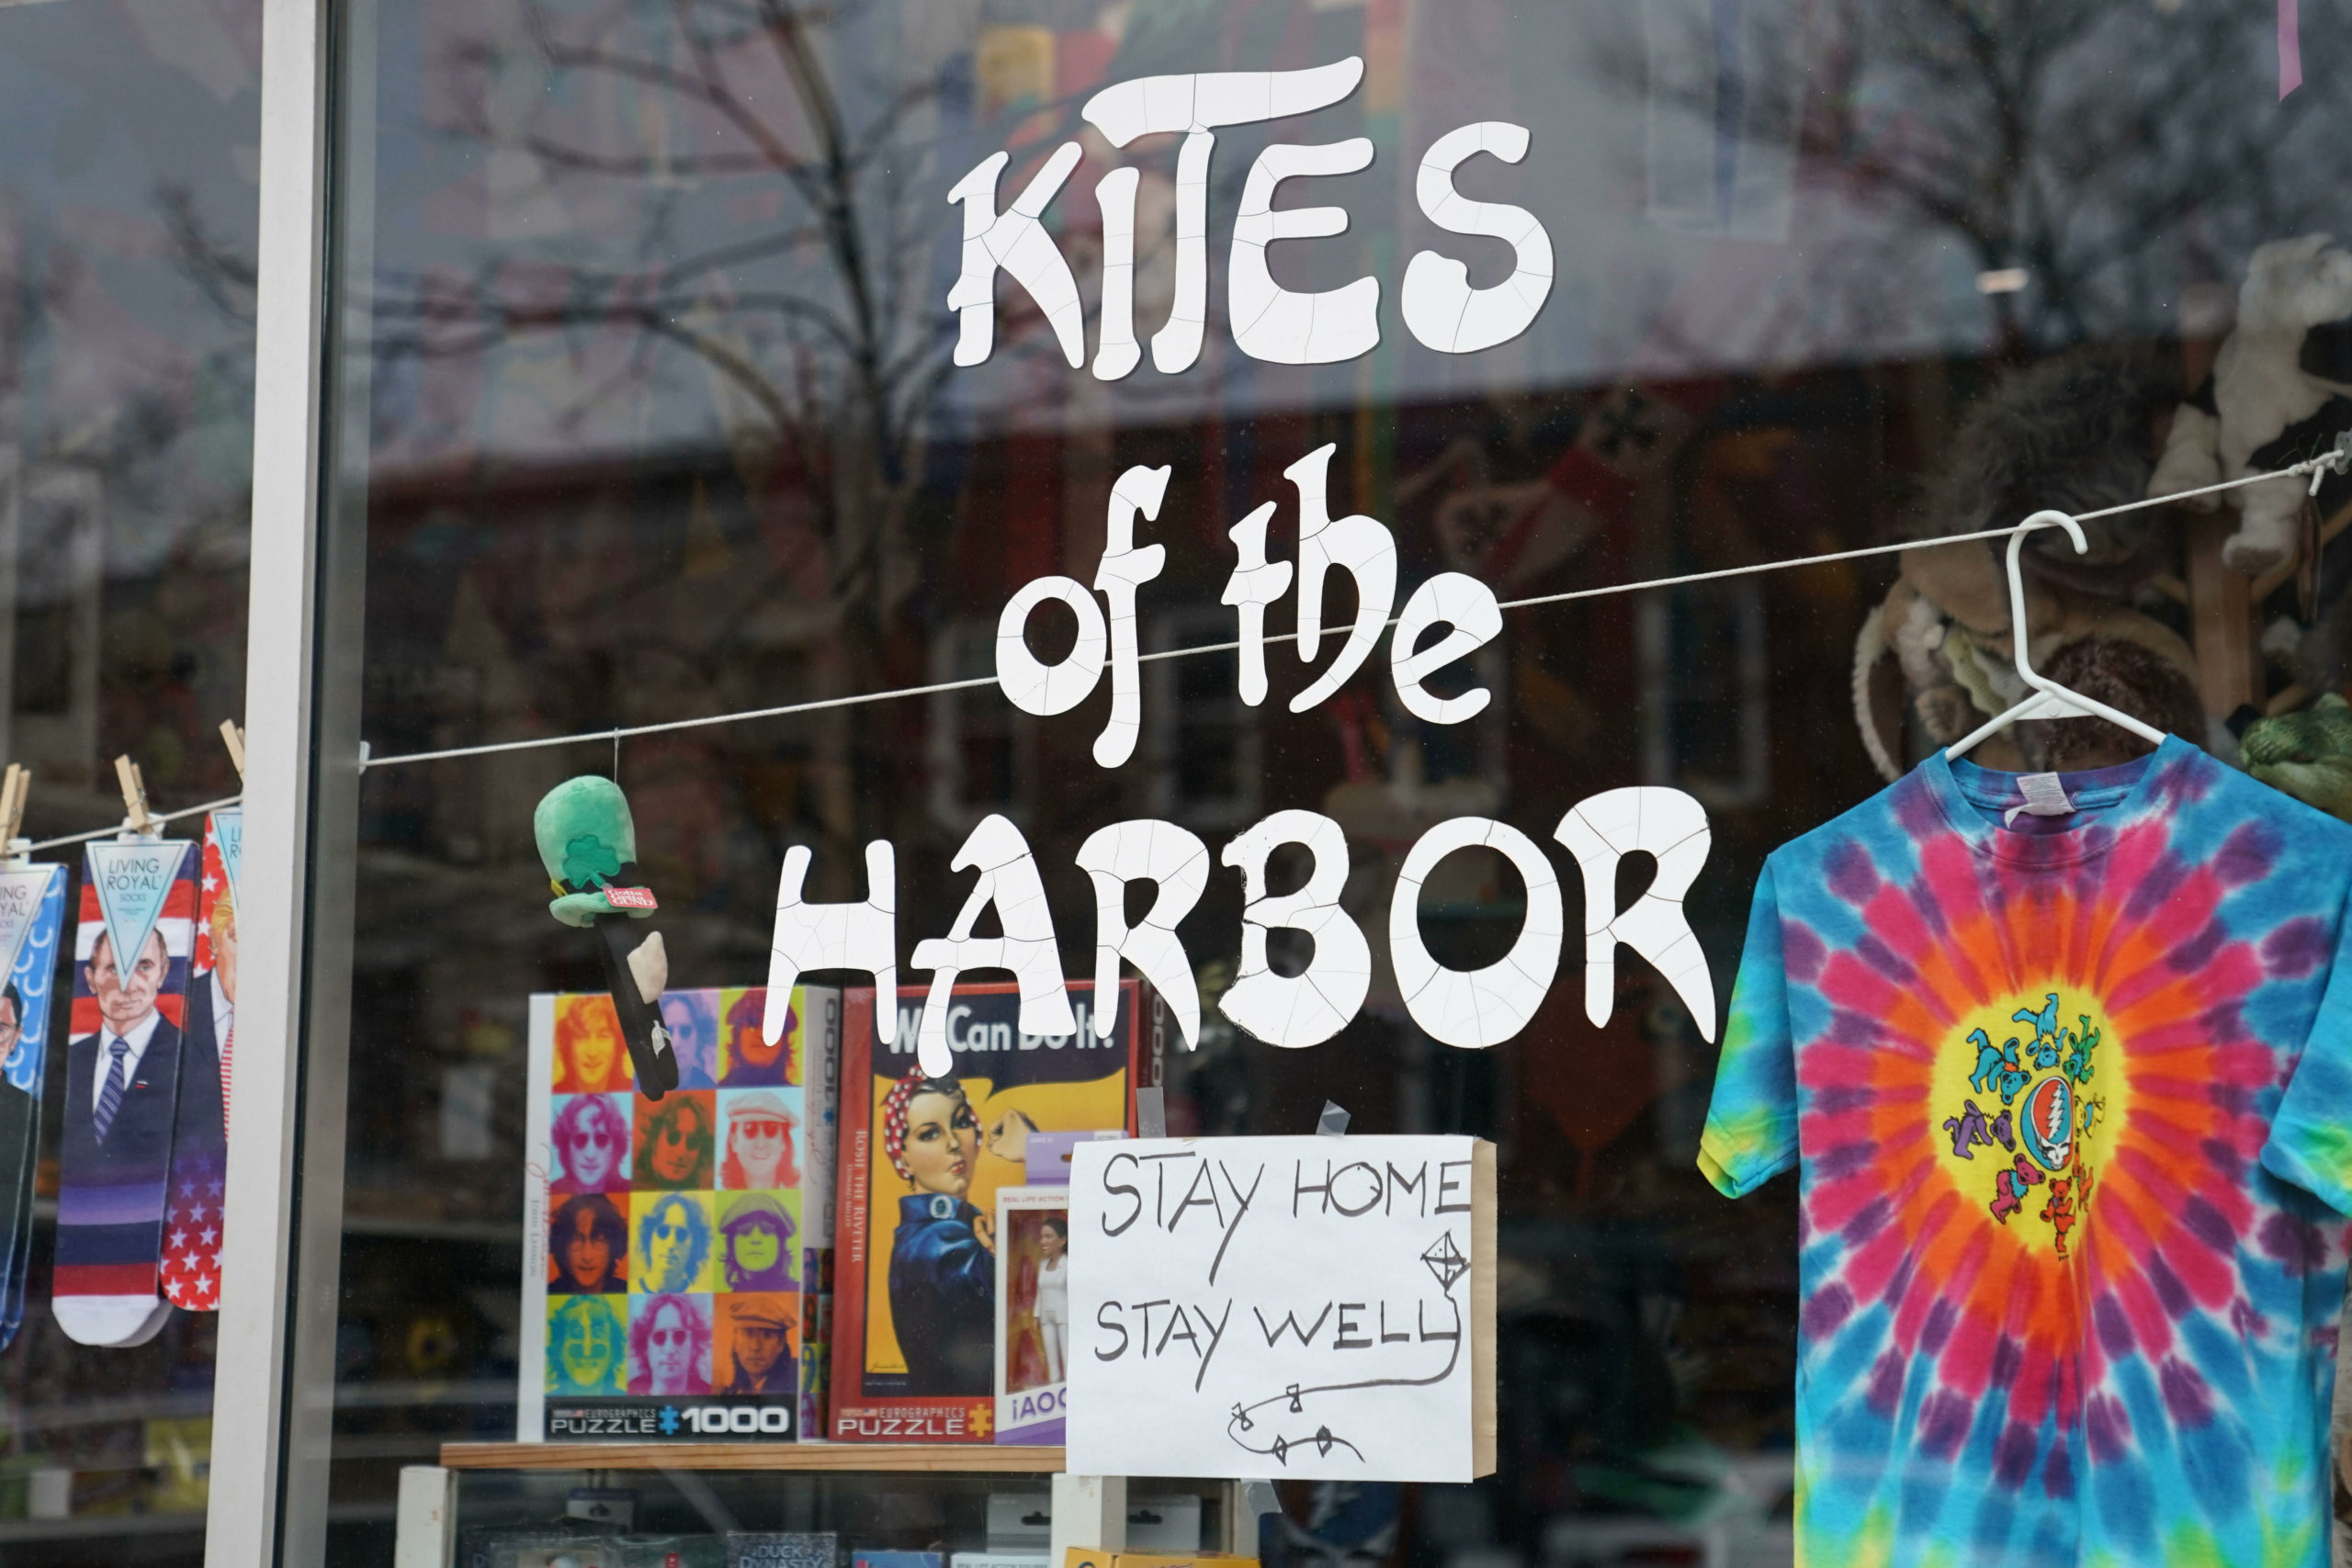 Sag Harbor's iconic Main Street store, Kites of the Harbor, encourgaed safety this week.